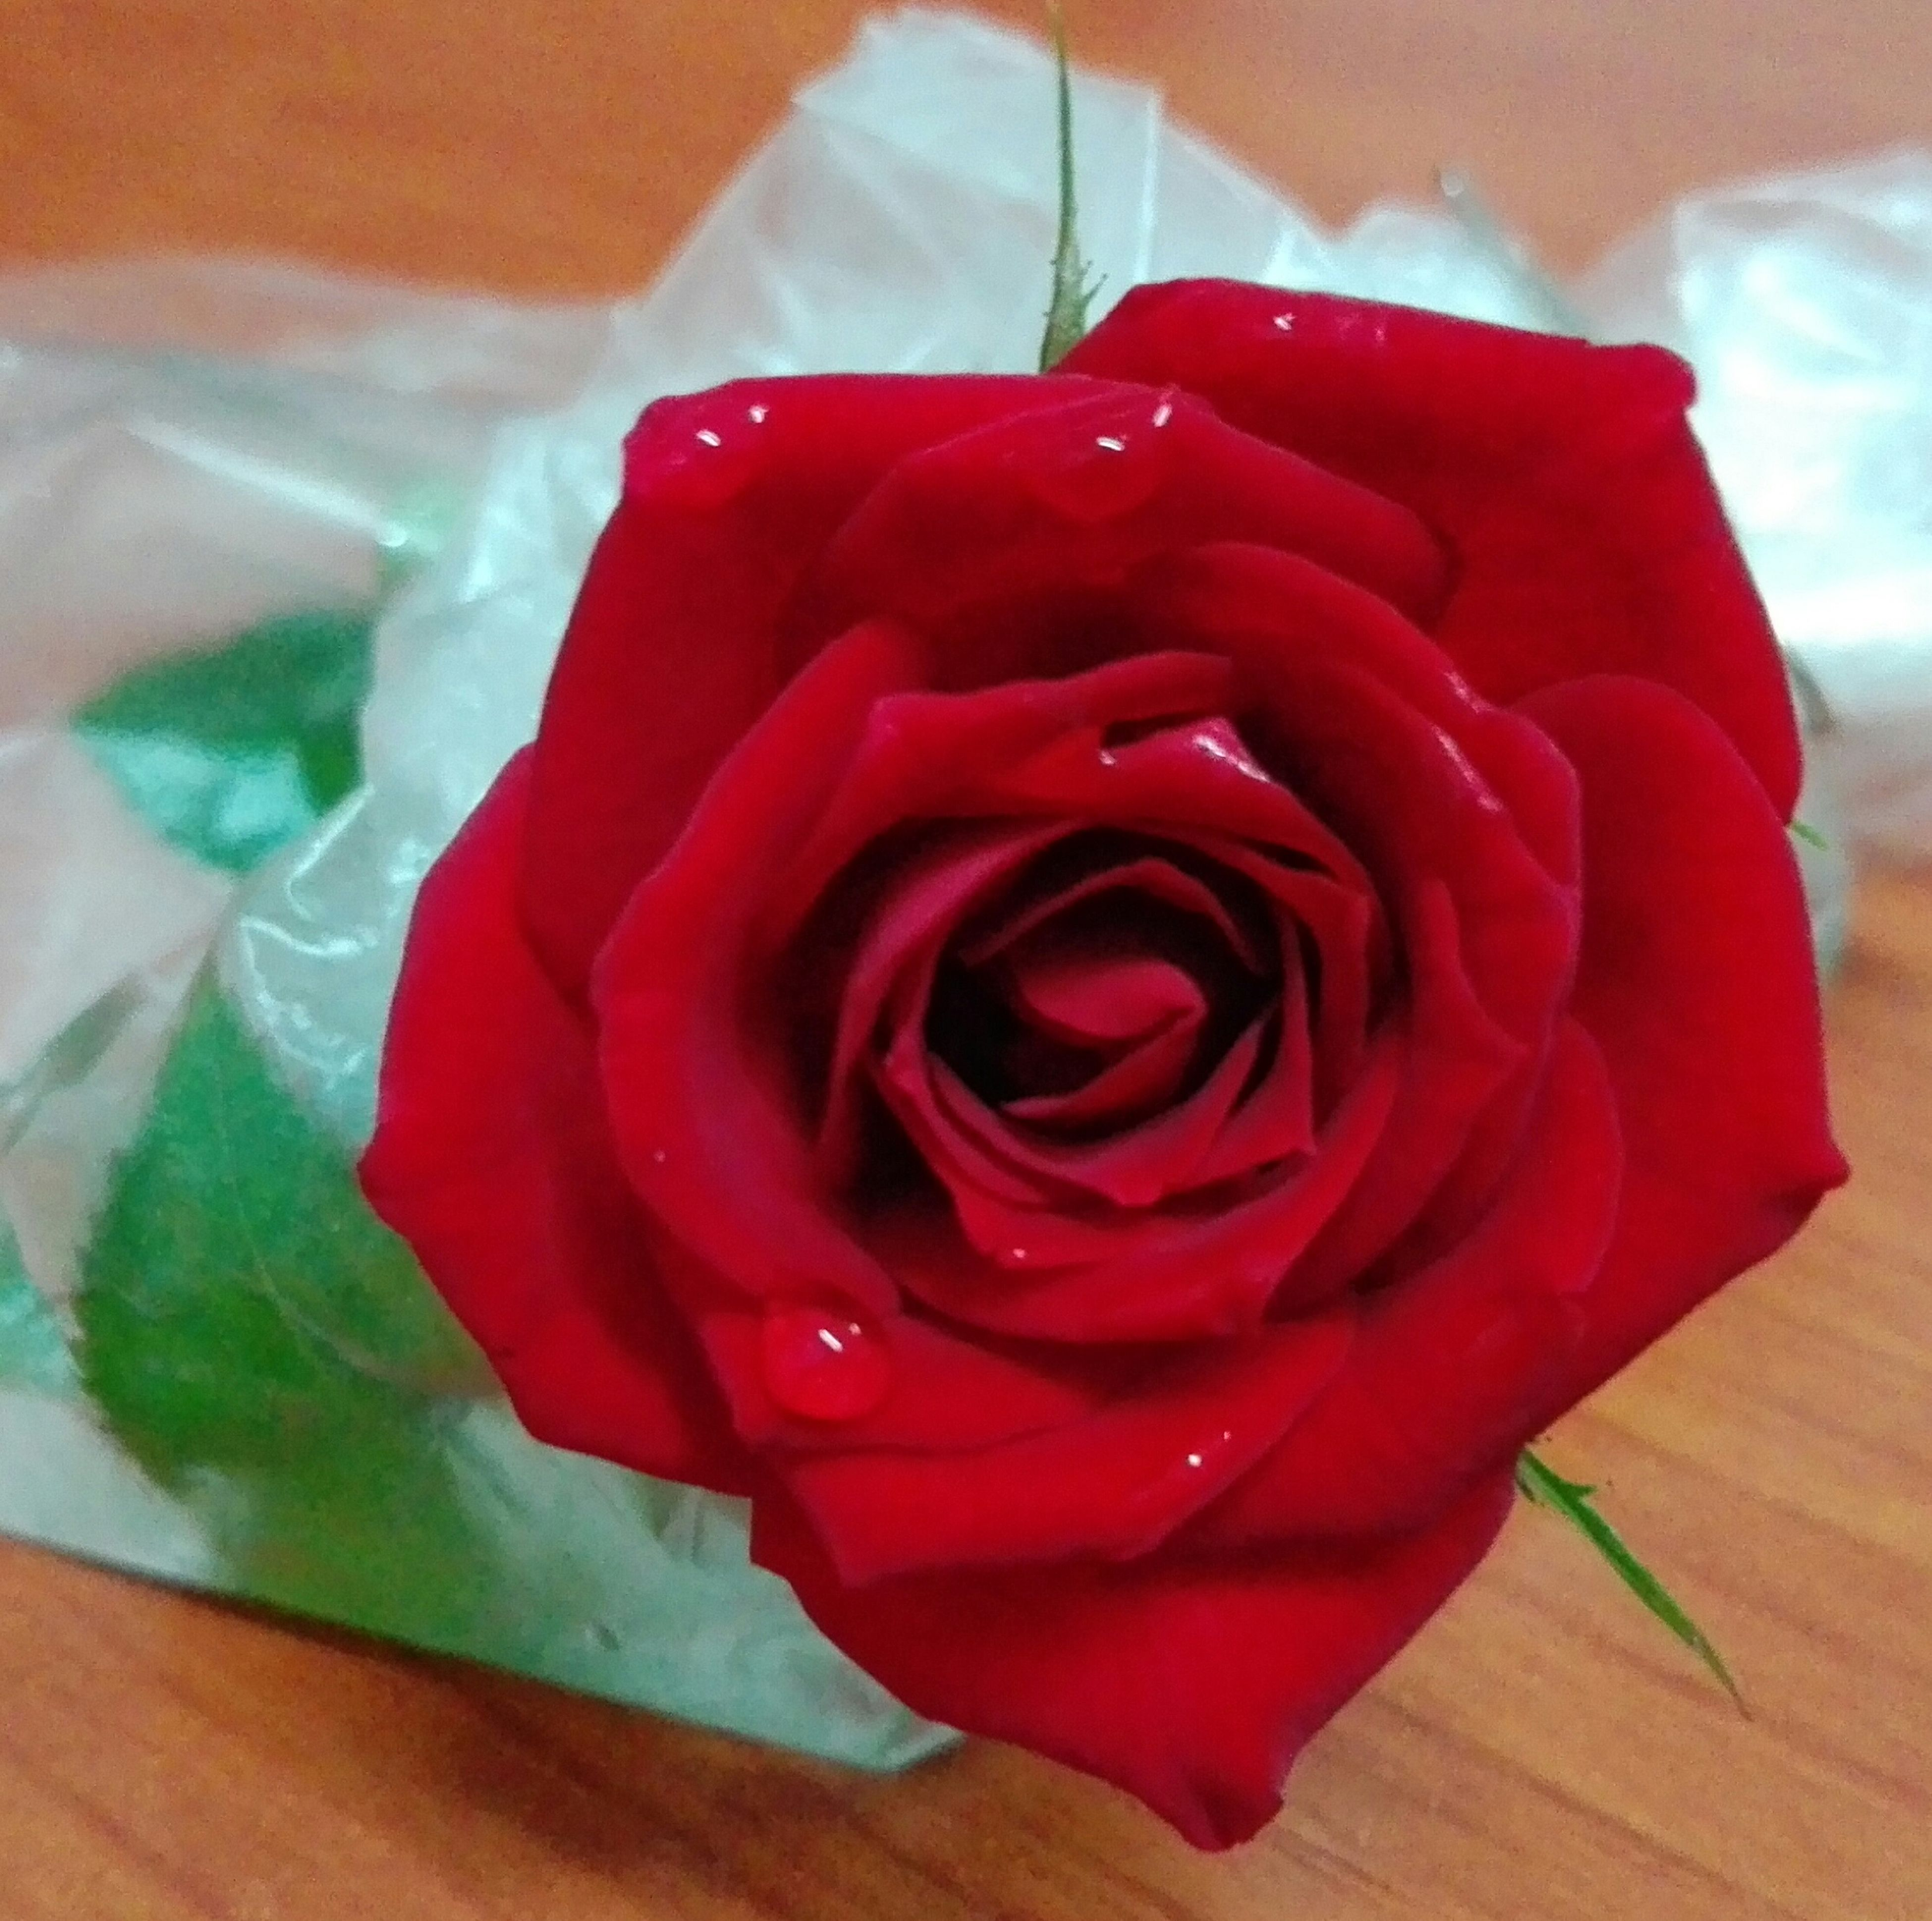 flower, rose - flower, petal, nature, beauty in nature, fragility, flower head, freshness, red, close-up, love, rose petals, no people, growth, plant, indoors, day